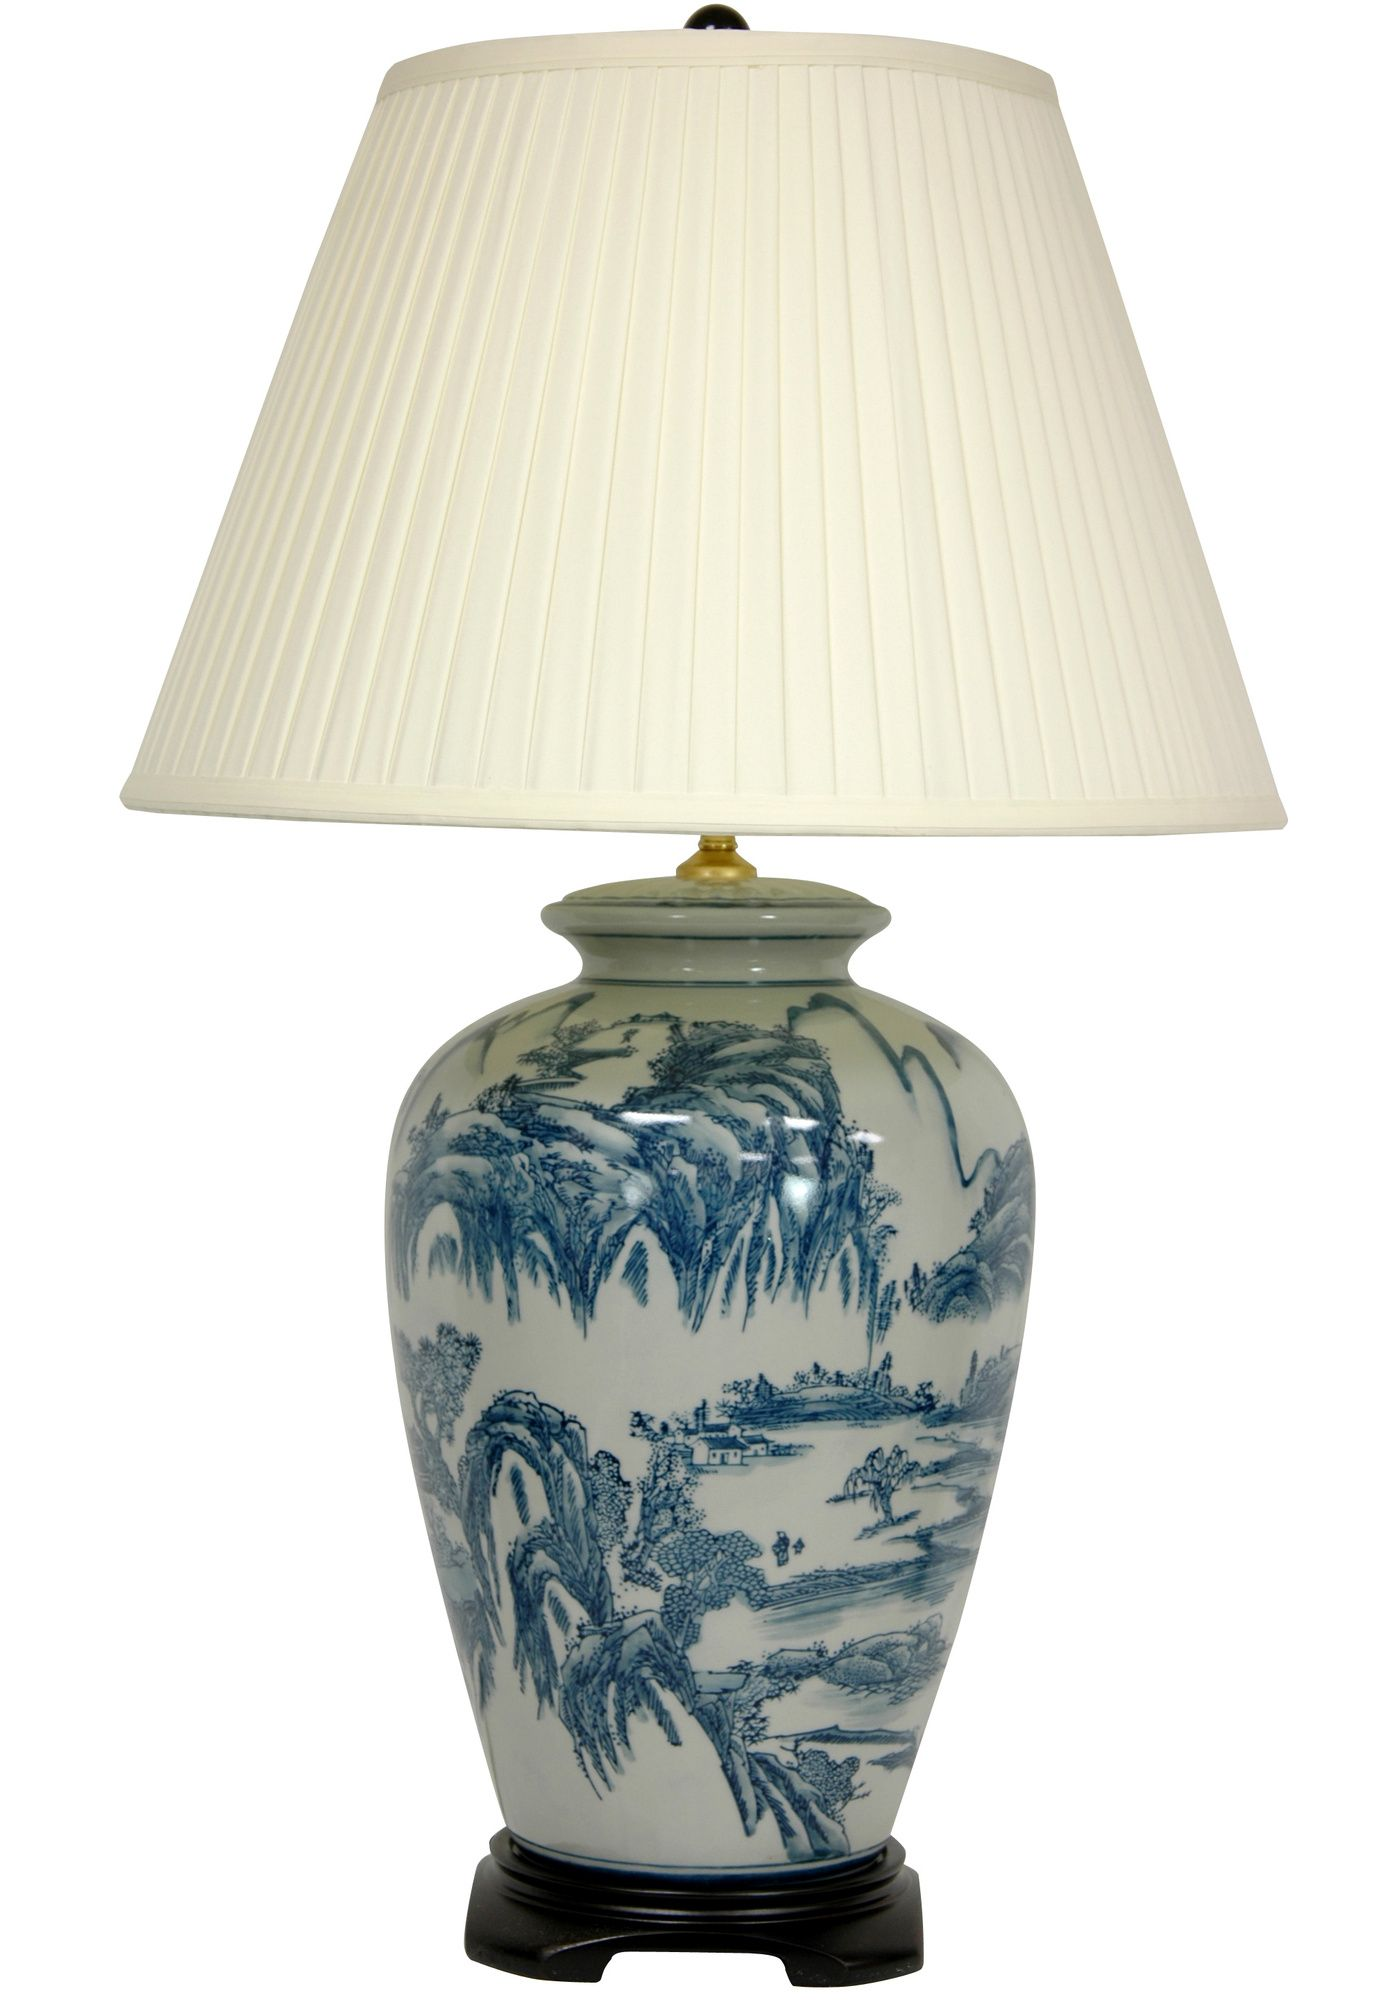 Oriental furniture chinese landscape oriental lamp in blue and oriental furniture chinese landscape oriental lamp in blue and white geotapseo Image collections